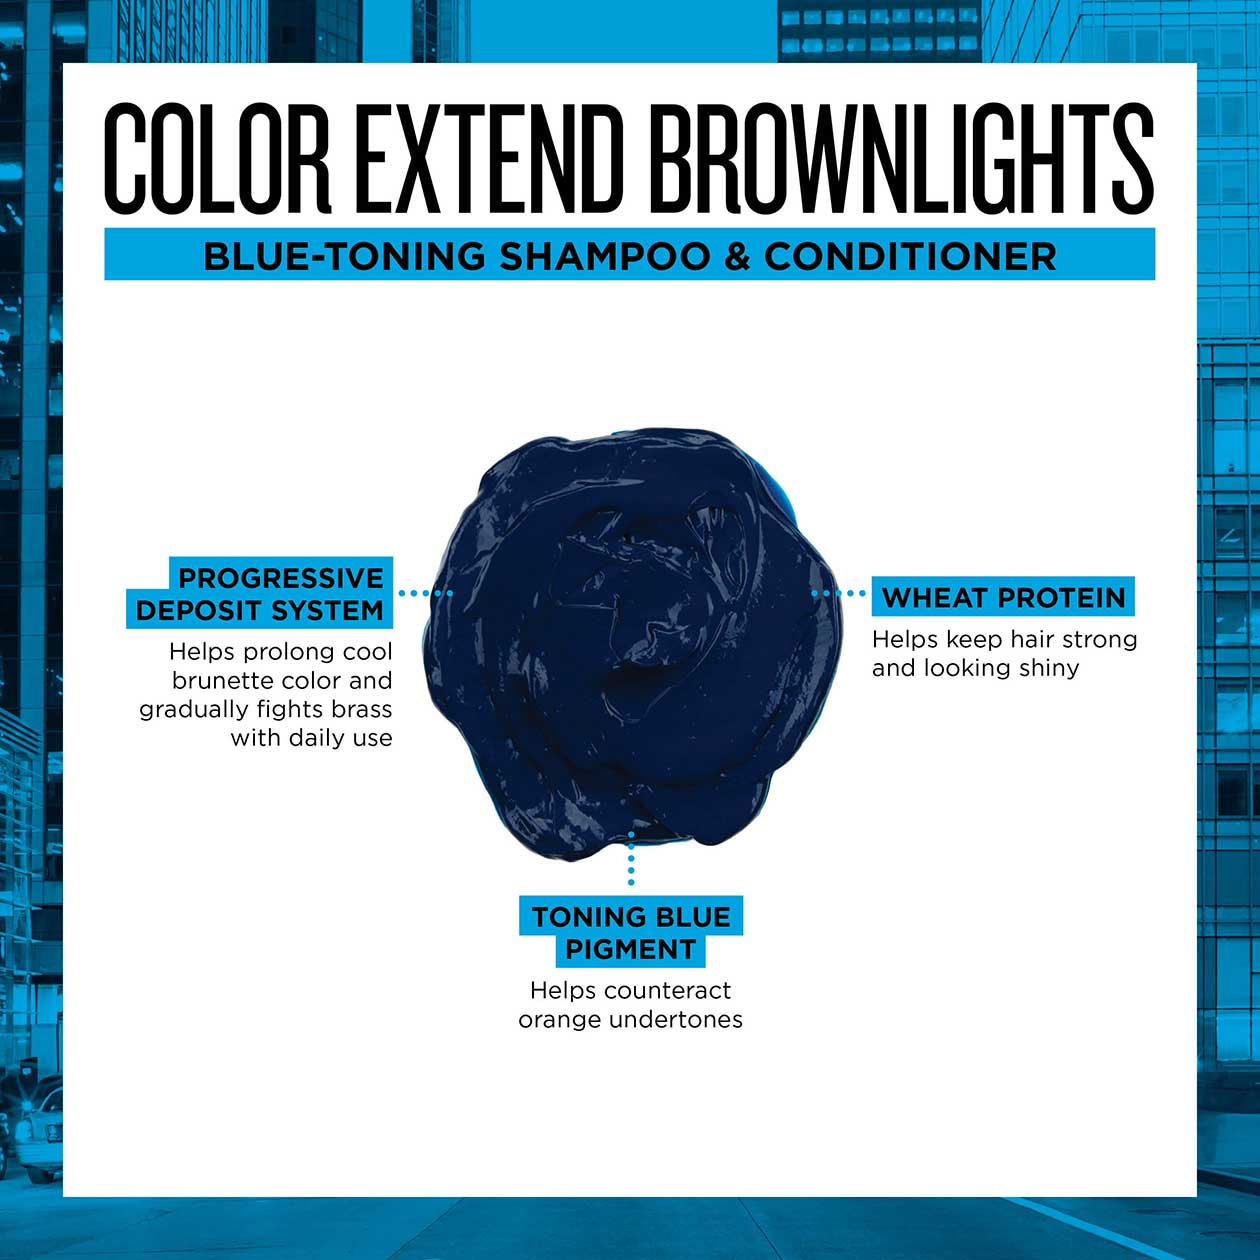 Redken-2019-Color-Extend-Brownlights-Infographic-Hairdressers-Cardiff